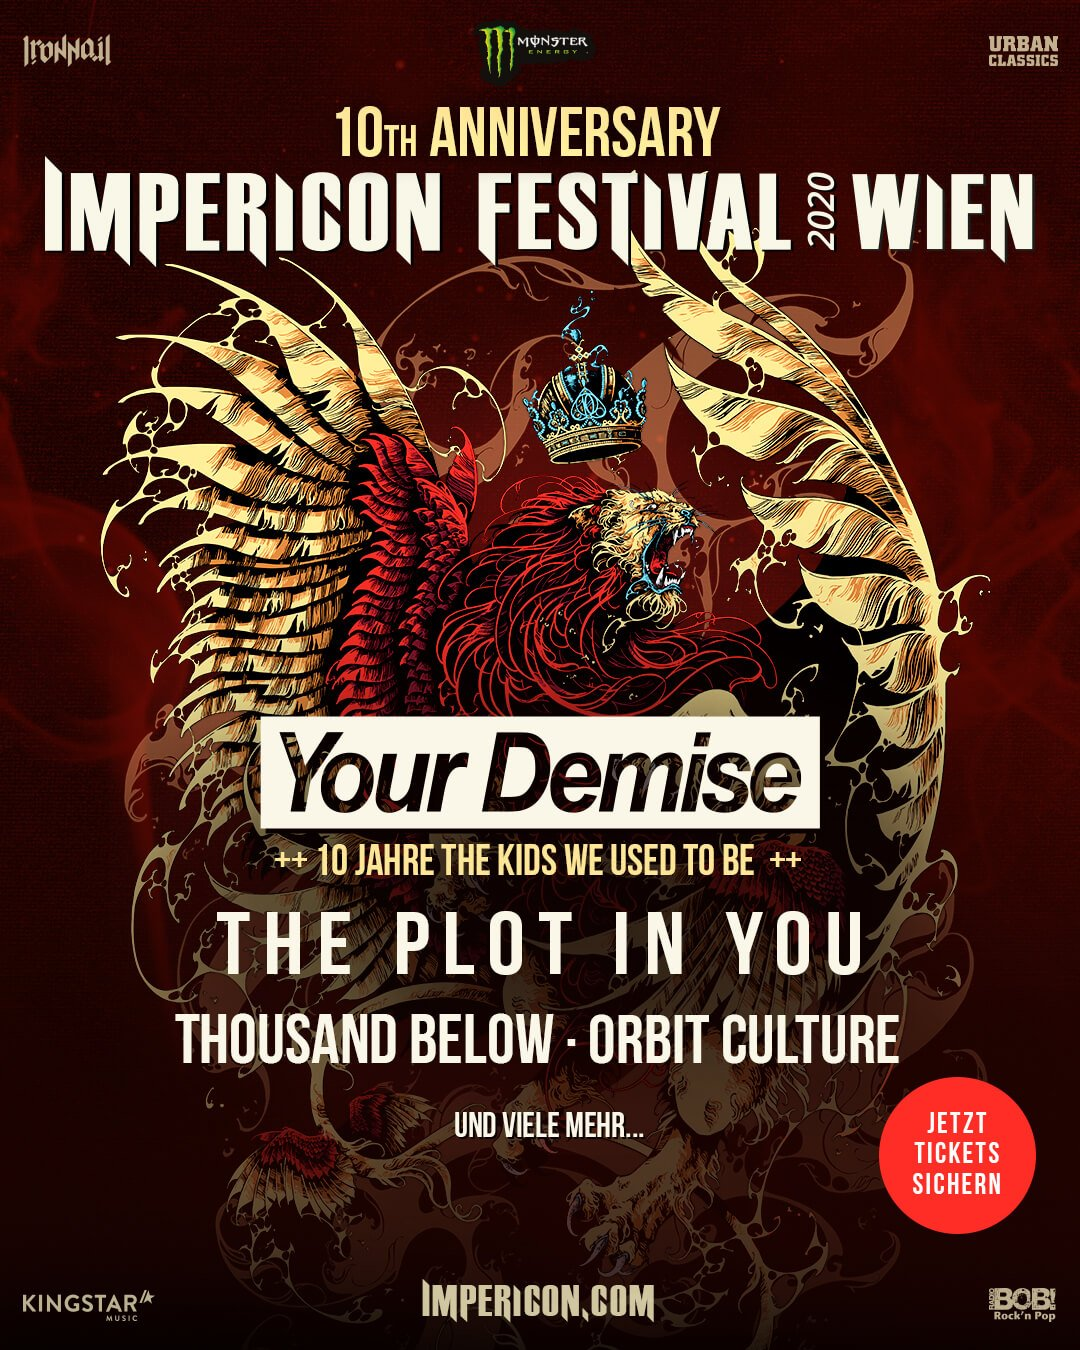 Phish Festival 2020.Impericon Festival 2020 At Arena Wien Wien On 10 Apr 2020